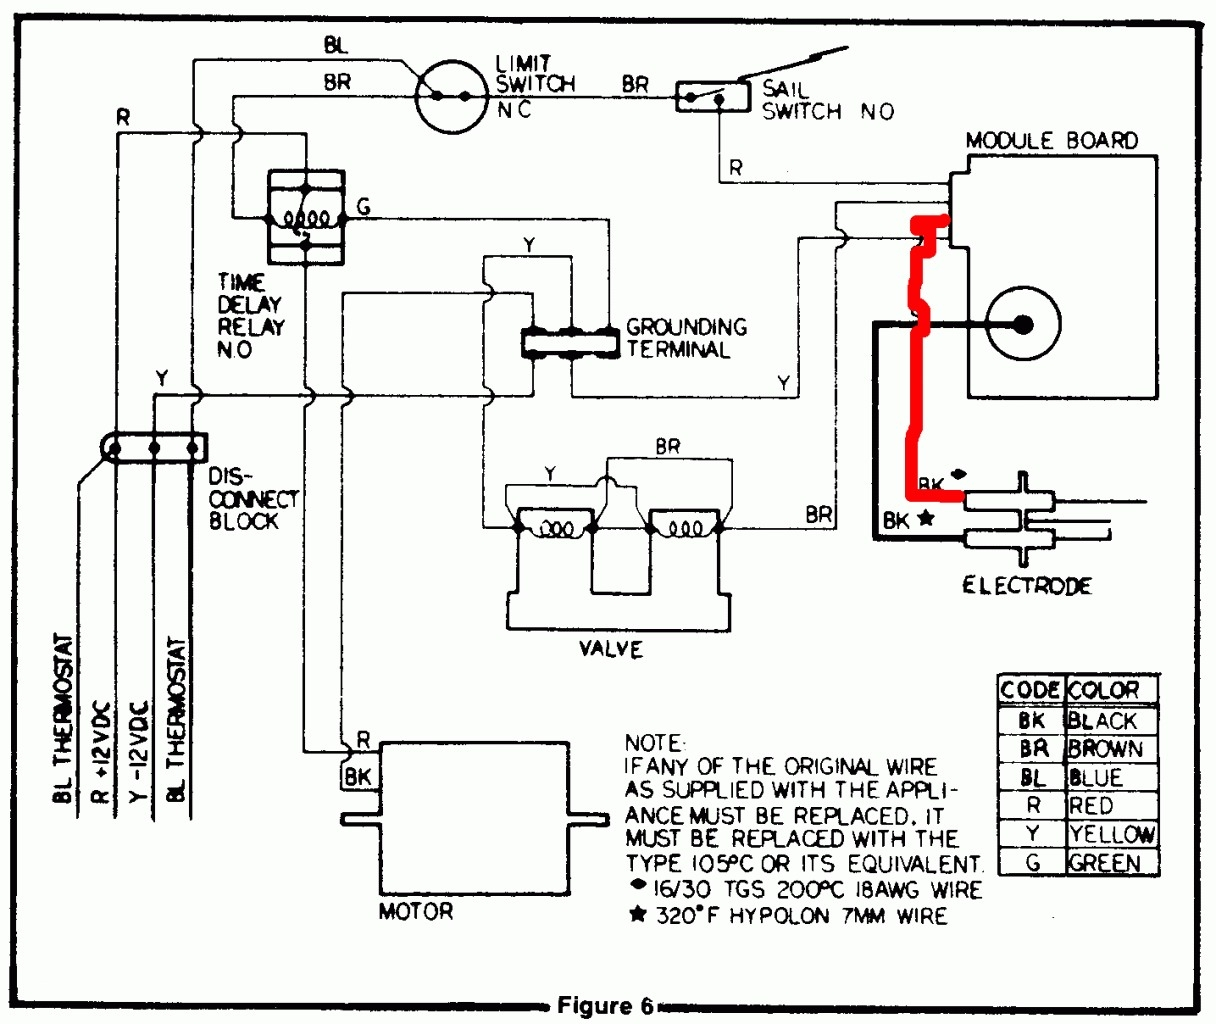 furnace wiring box explore wiring diagram on the net • basic furnace wiring wiring diagram description rh 19 2 virionserion de furnace wiring diagram control furnace